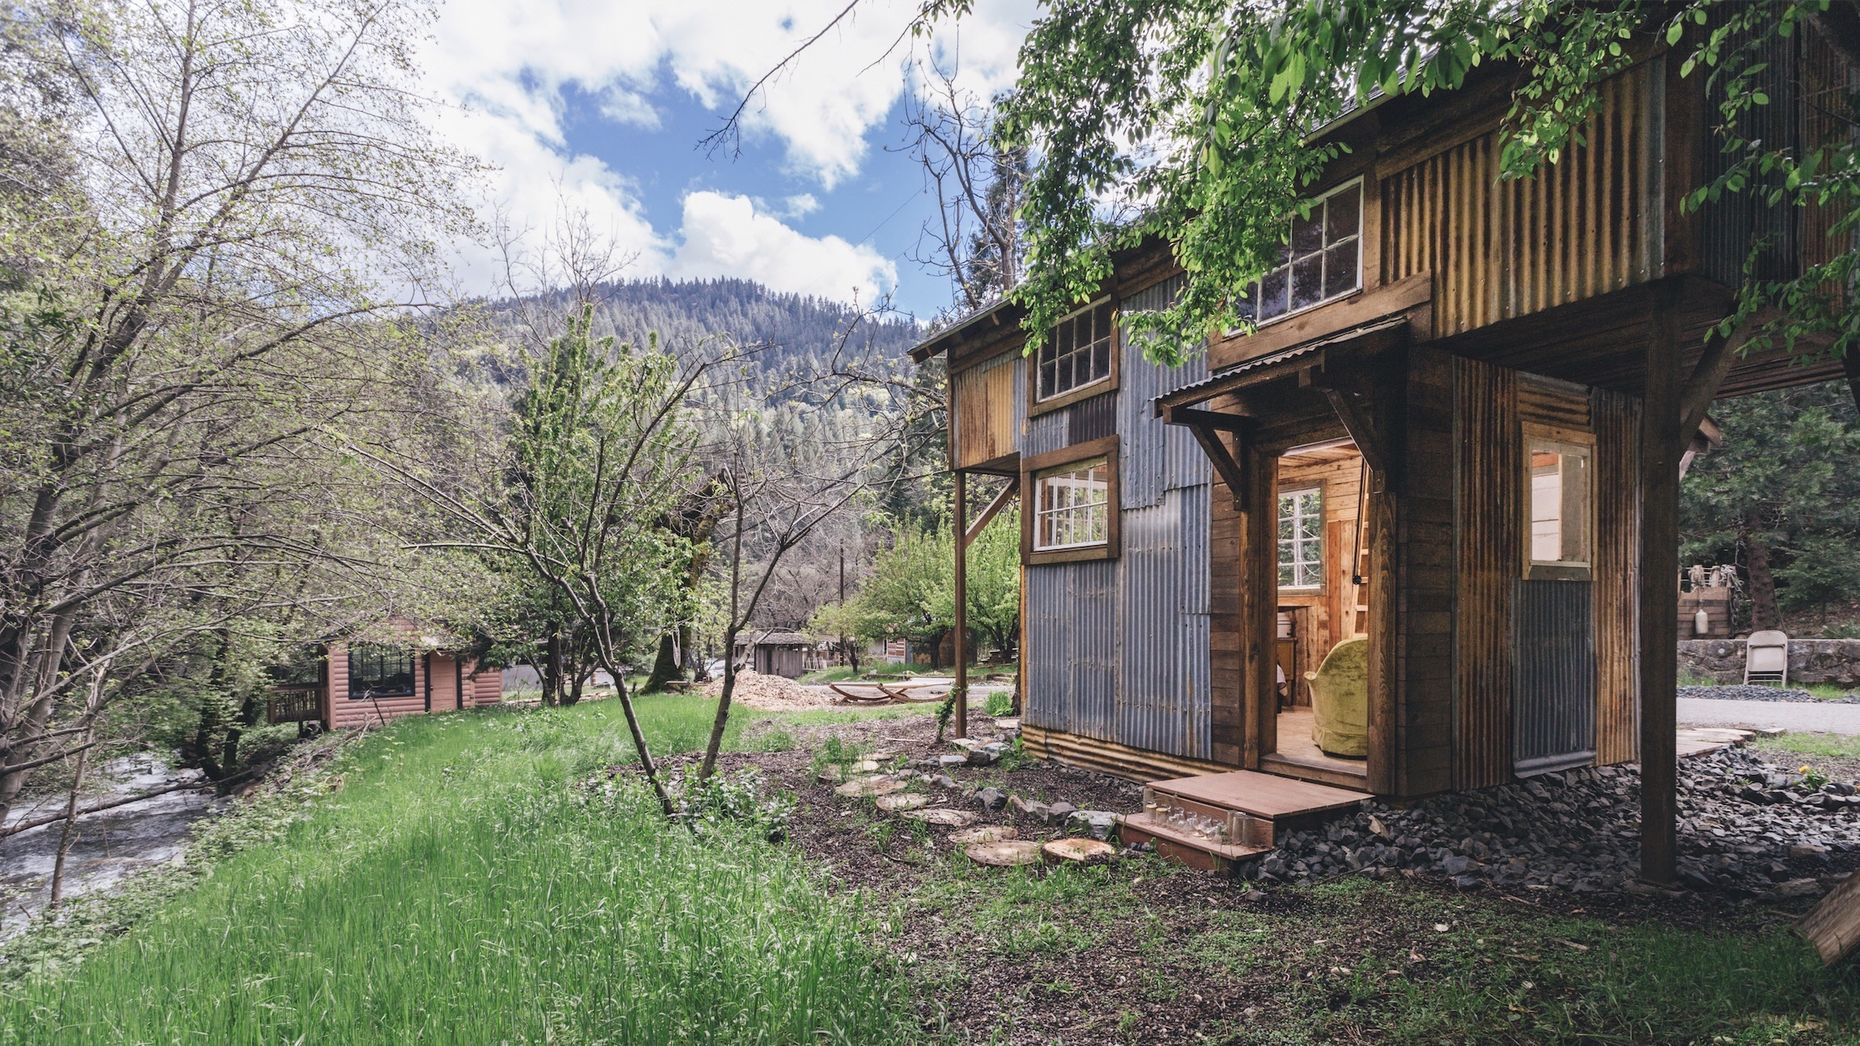 One of the houses in a Northern California town that Jane Dinh plans to use for her escape community.